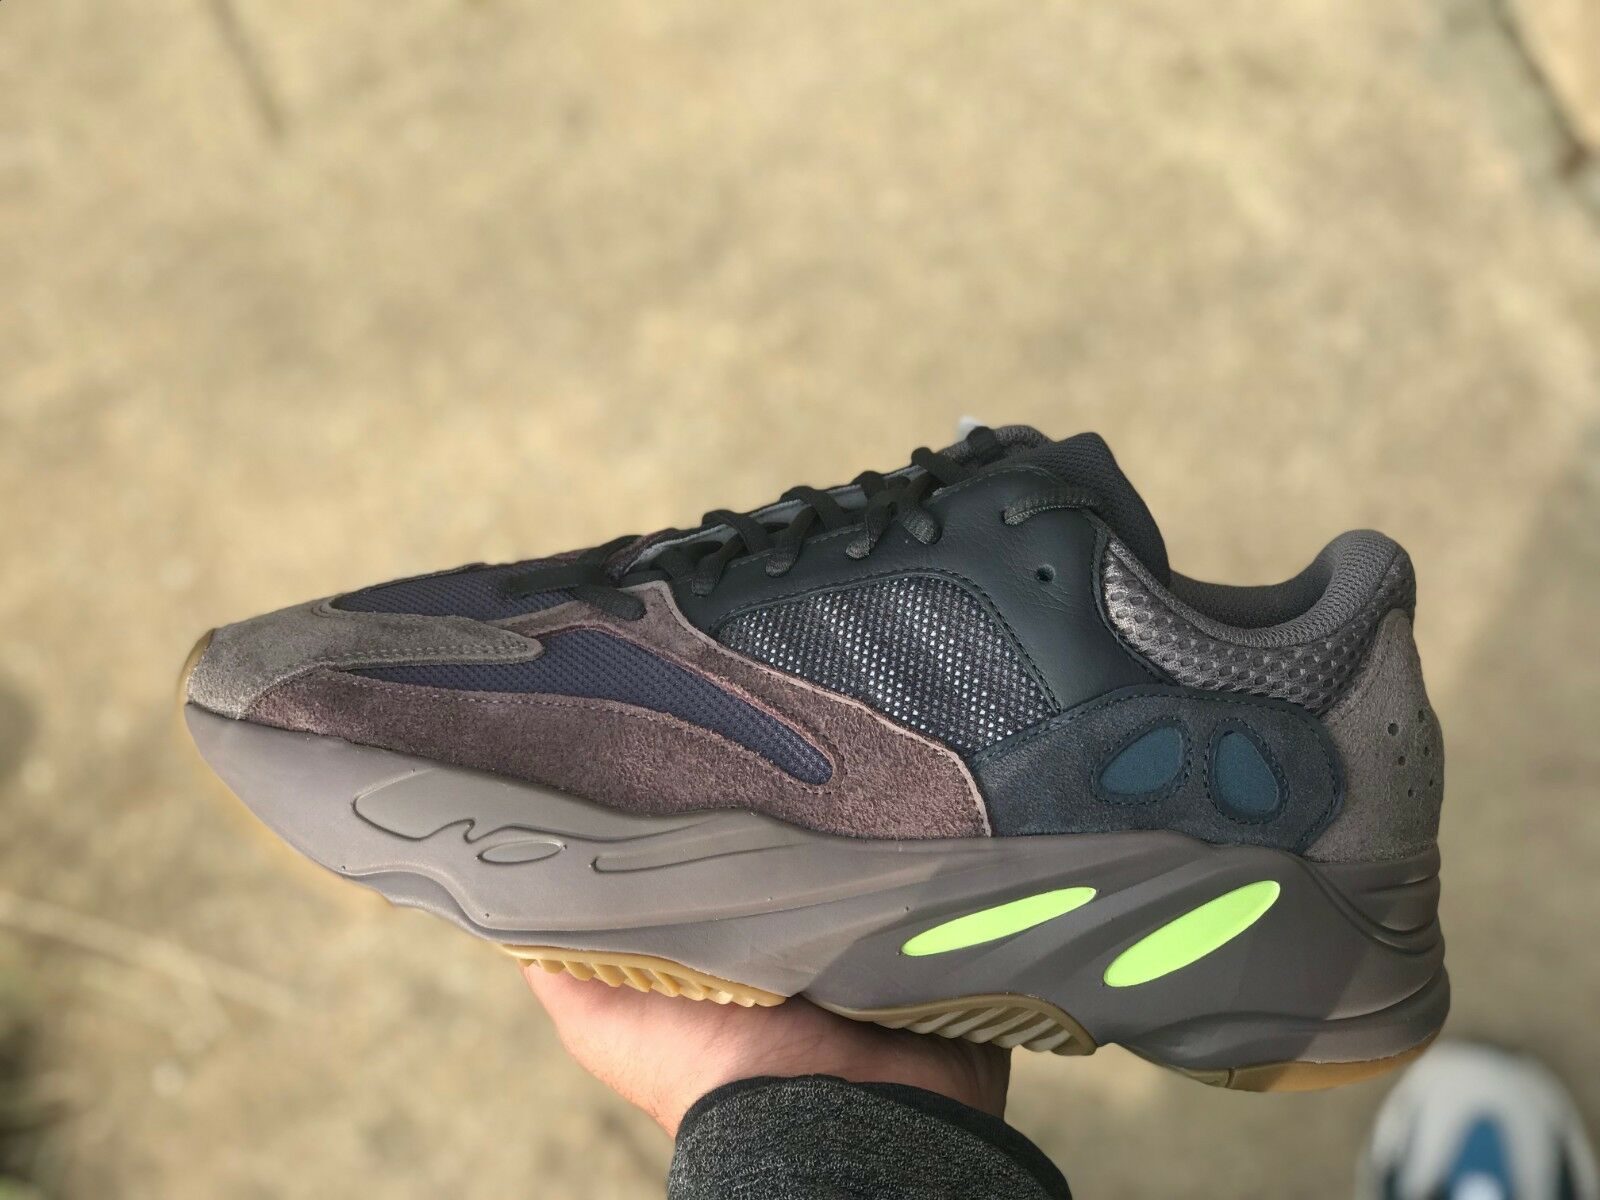 Yeezy Boost 700 Mauve Size US 9.5 Brand New DS Confirmed Order